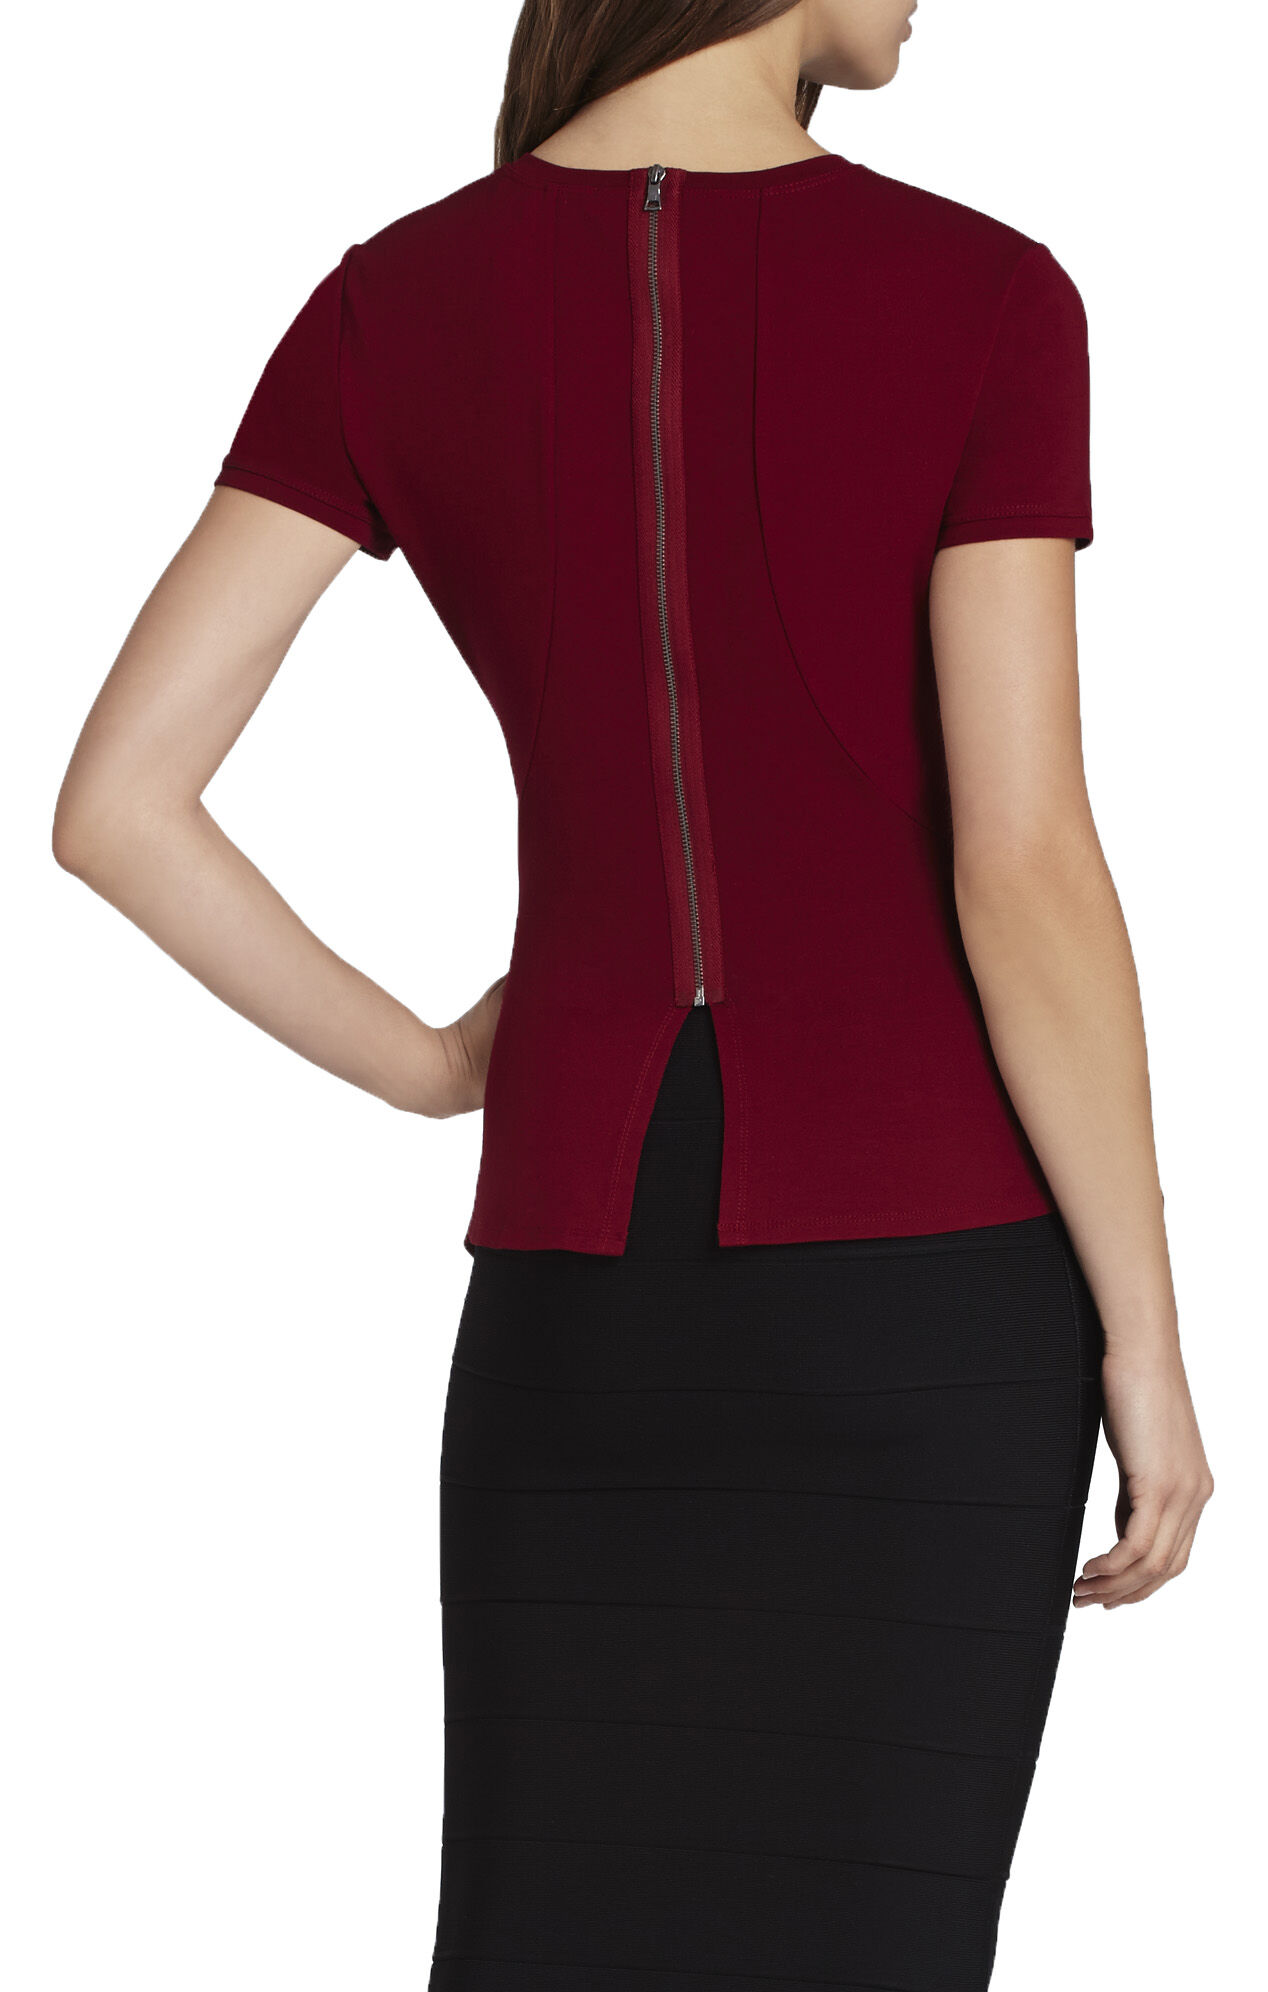 Scarlet Short-Sleeve Peplum Top